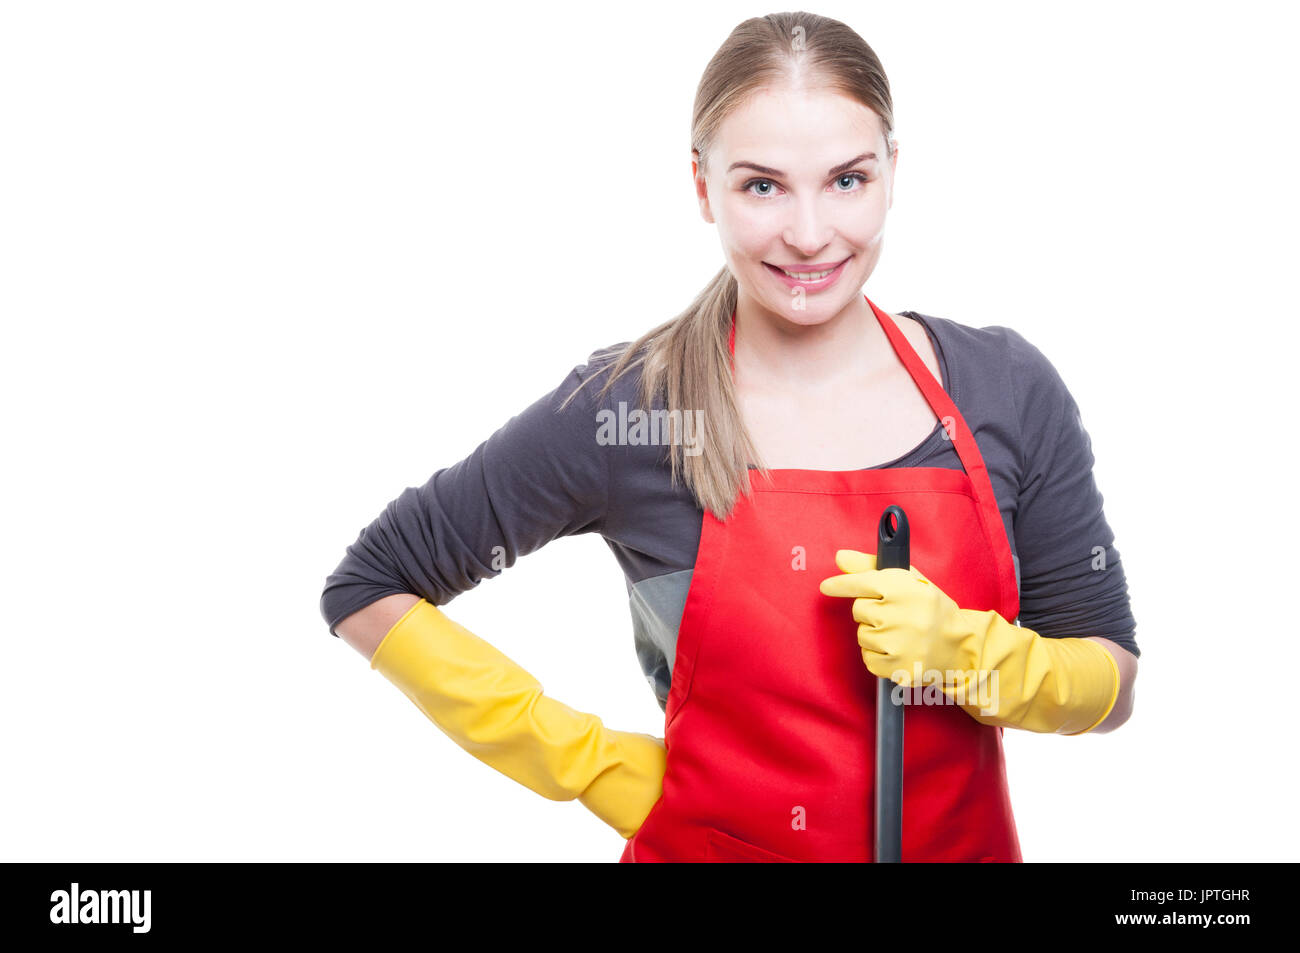 Portrait of smiling housekeeper holding mop for cleaning housework isolated on white background - Stock Image